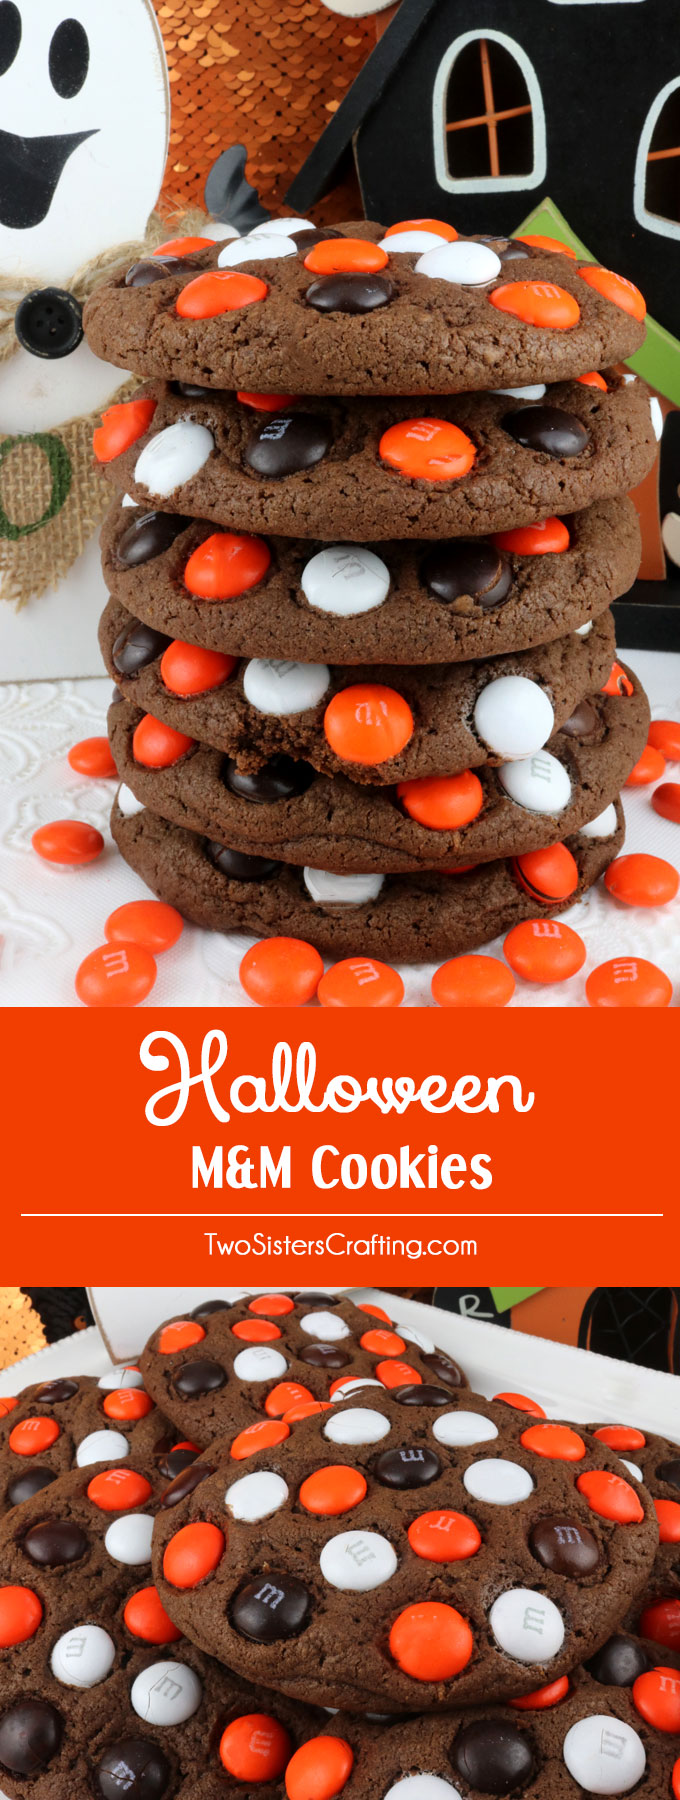 halloween mm cookies